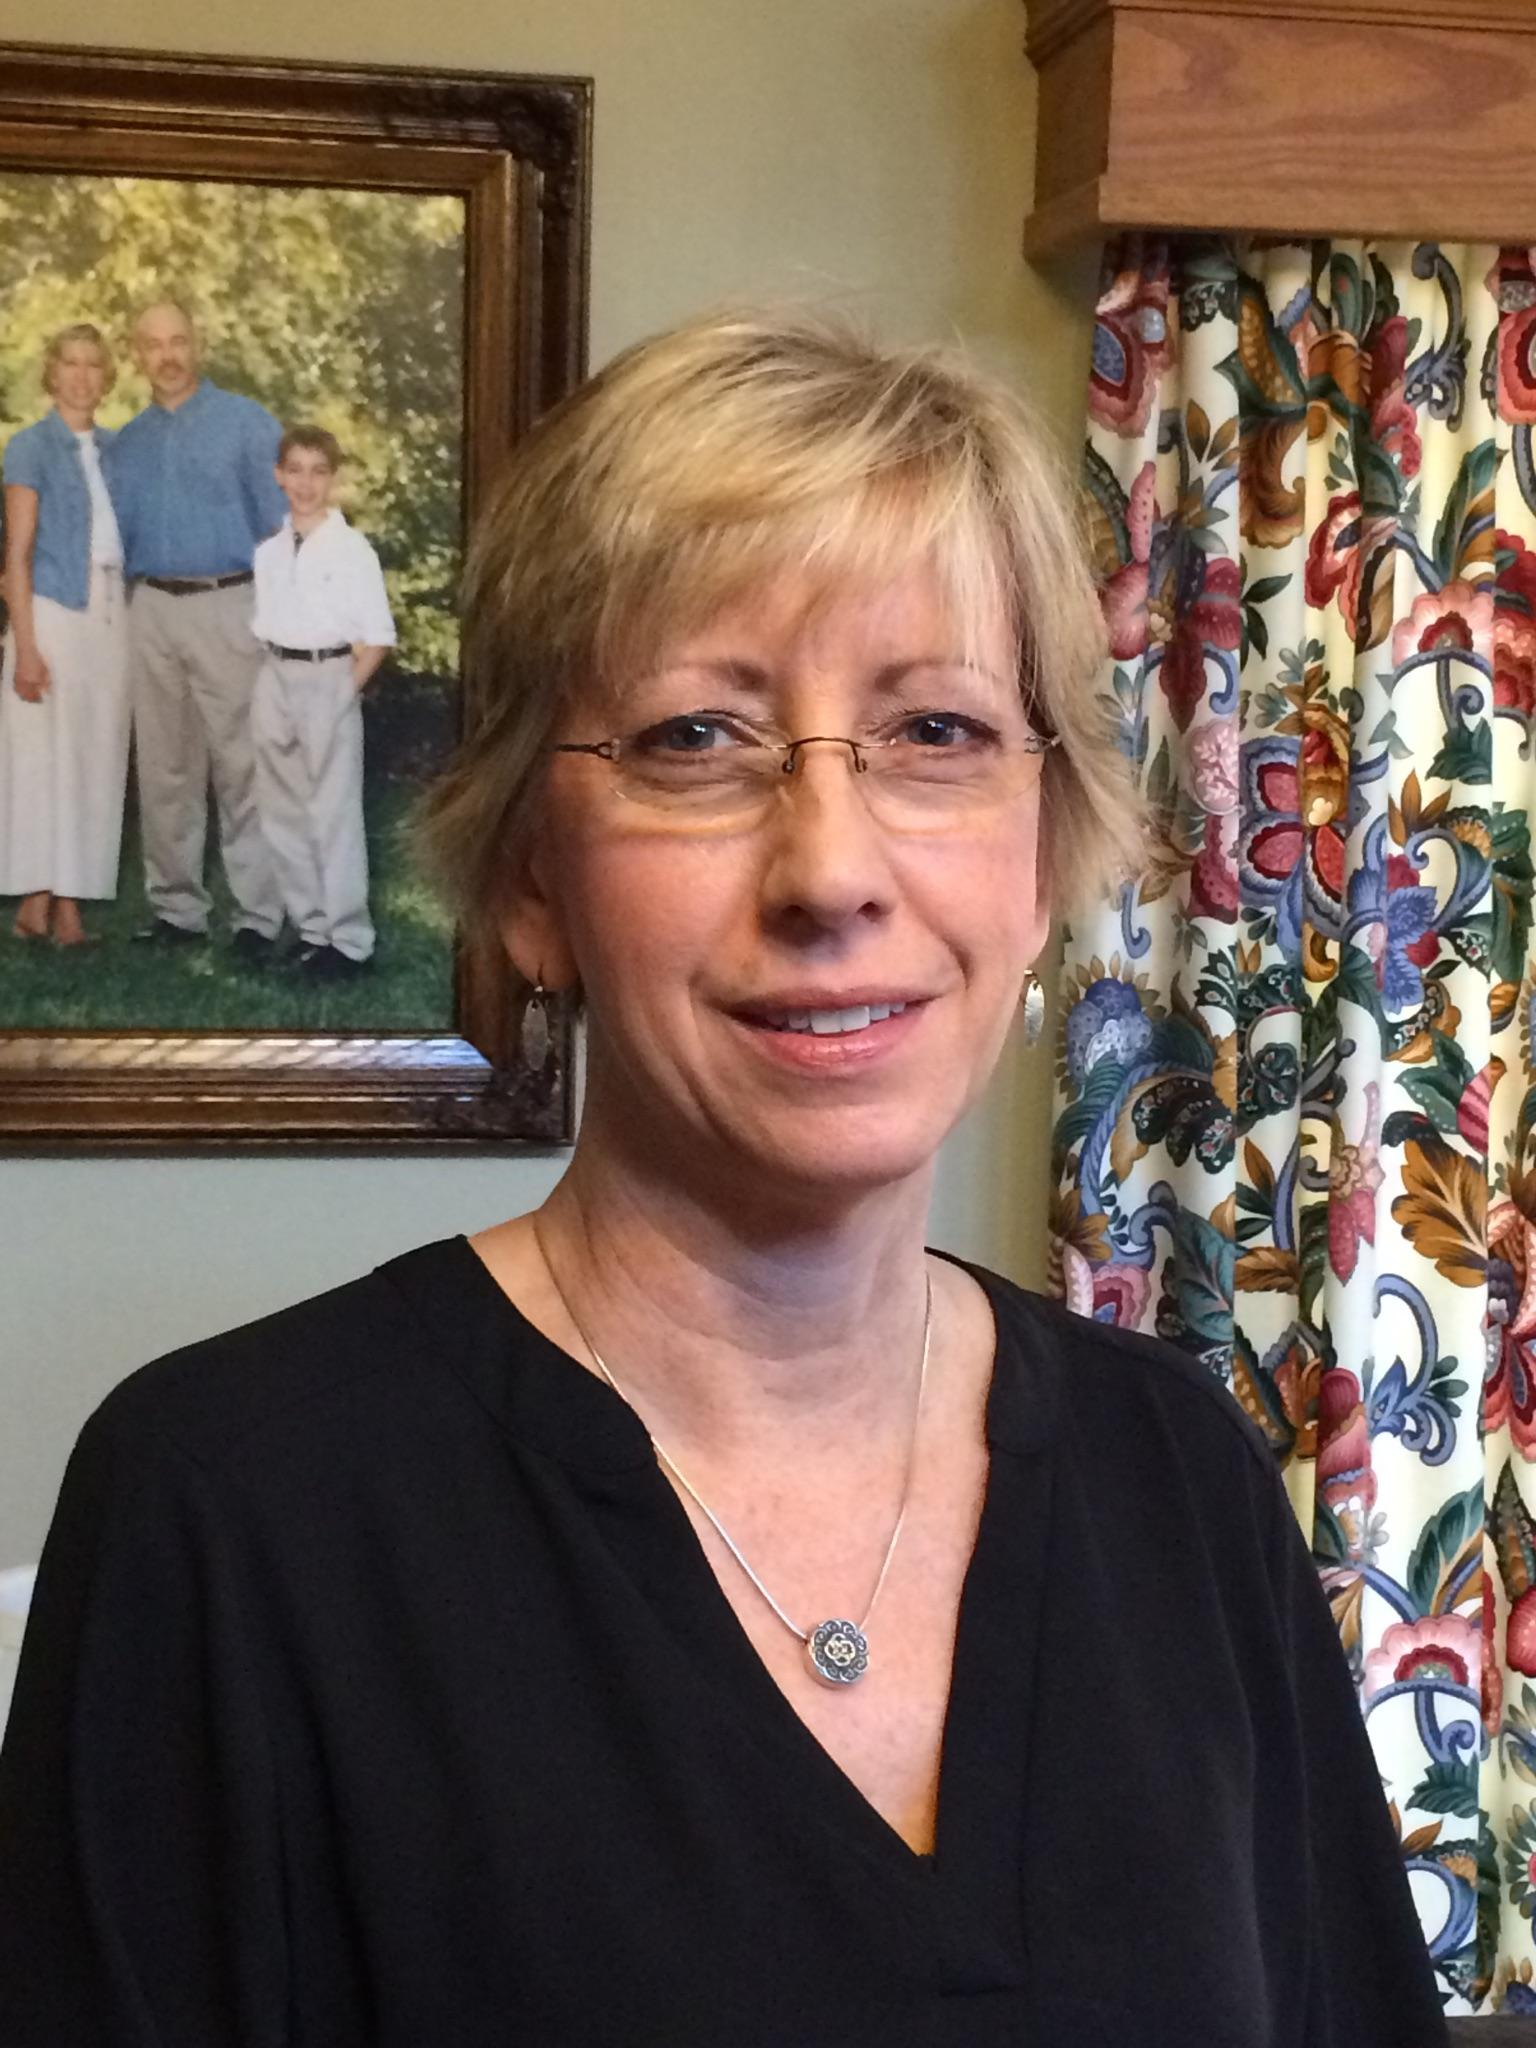 Linda Dietrich, Certified Academic Language Therapist (CALT) and Licensed Dyslexia Therapist (LDT) in the state of Texas